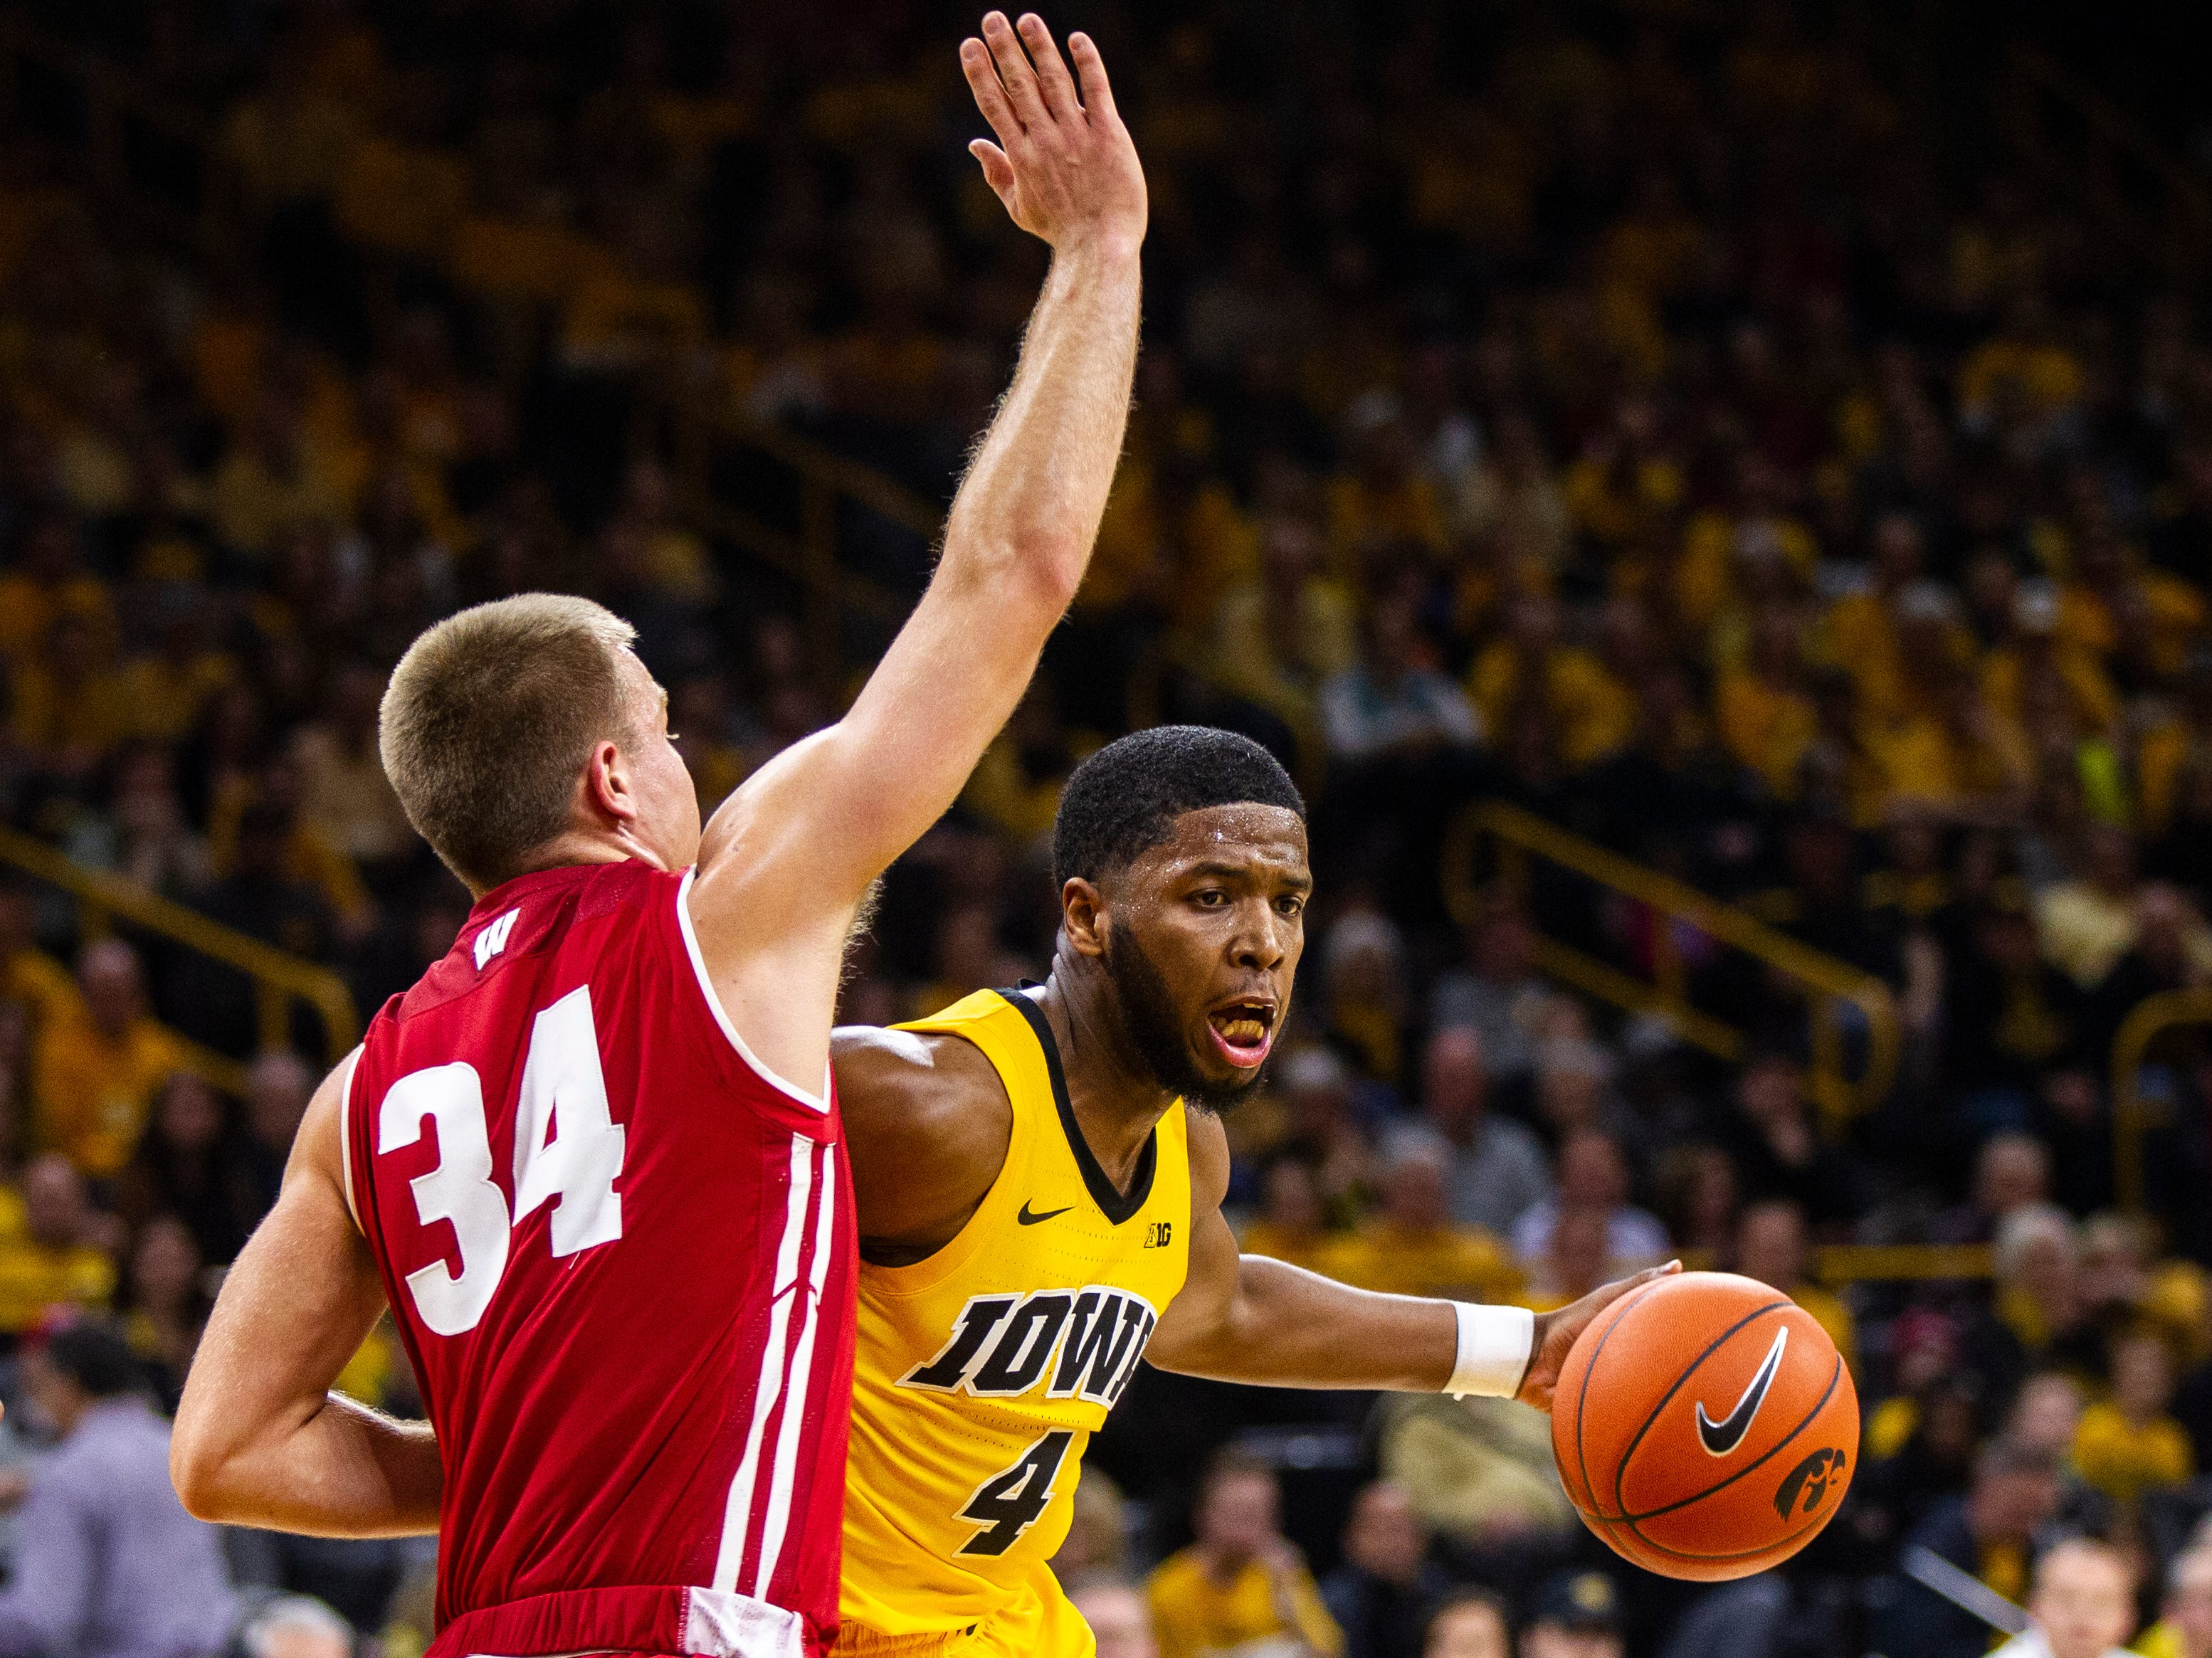 Iowa guard Isaiah Moss (4) drives to the hoop past Wisconsin's Brad Davidson (34) during a NCAA Big Ten Conference men's basketball game on Friday, Nov. 30, 2018, at Carver-Hawkeye Arena in Iowa City.